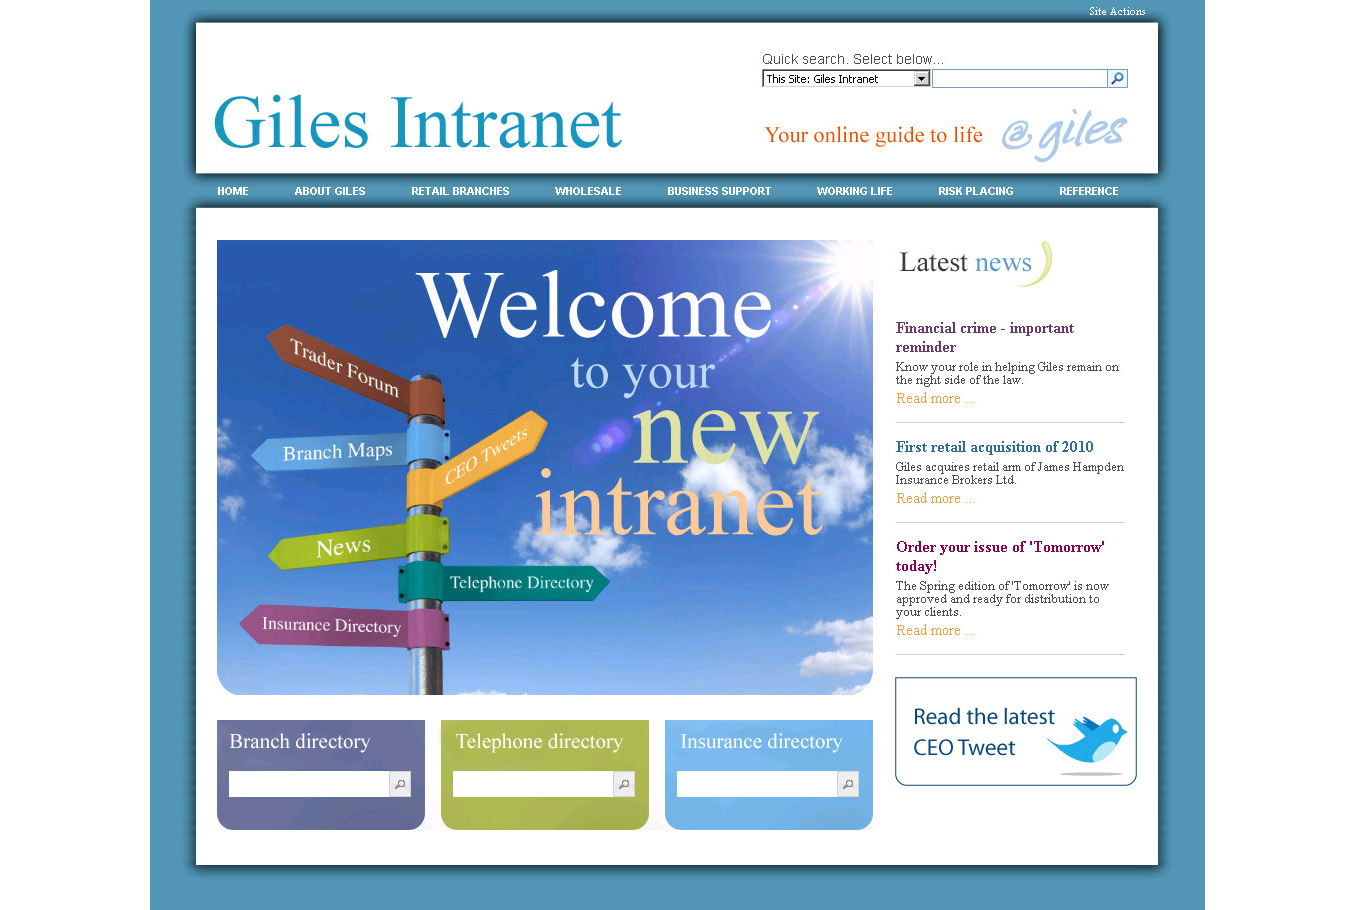 page resource that showed examples of different intranet designs